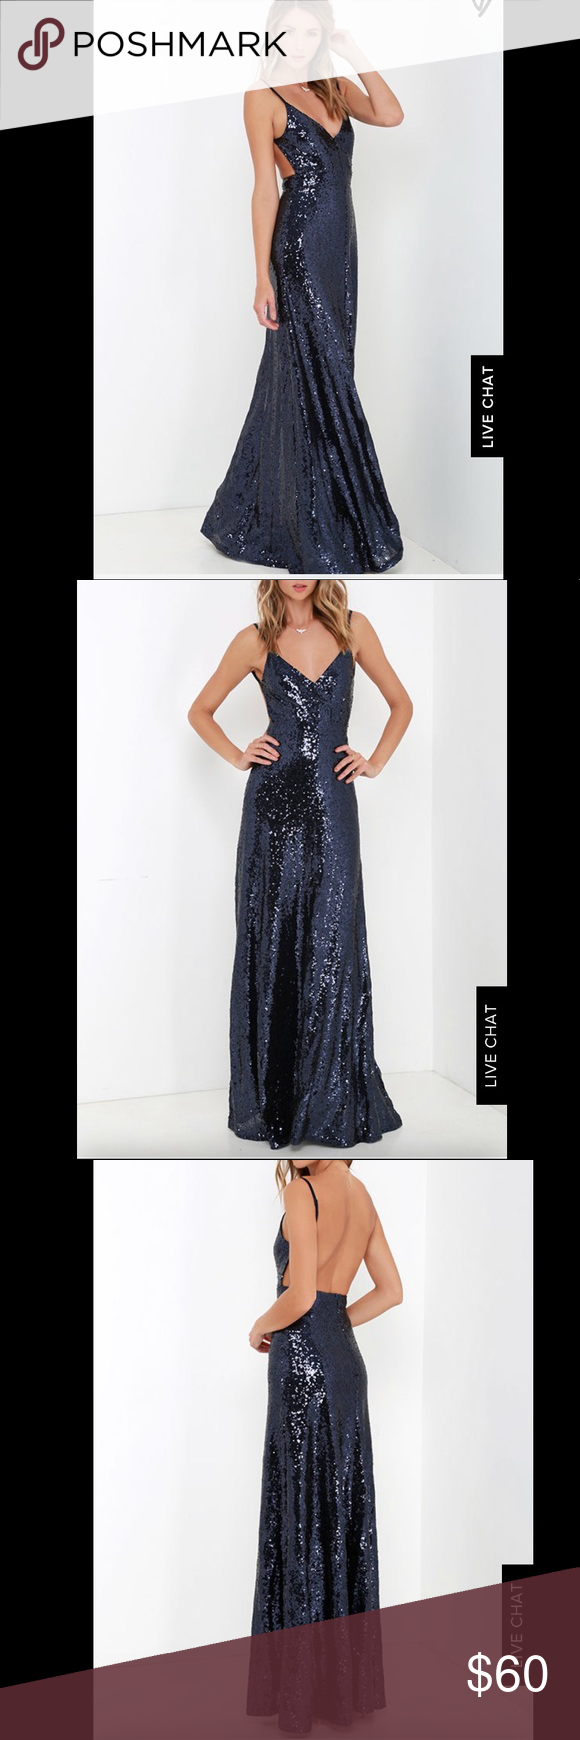 78f568f28b Lulus XS Blue Sequin Formal Maxi Dress Fancy Back Perfect condition size  extra small Lulus floor